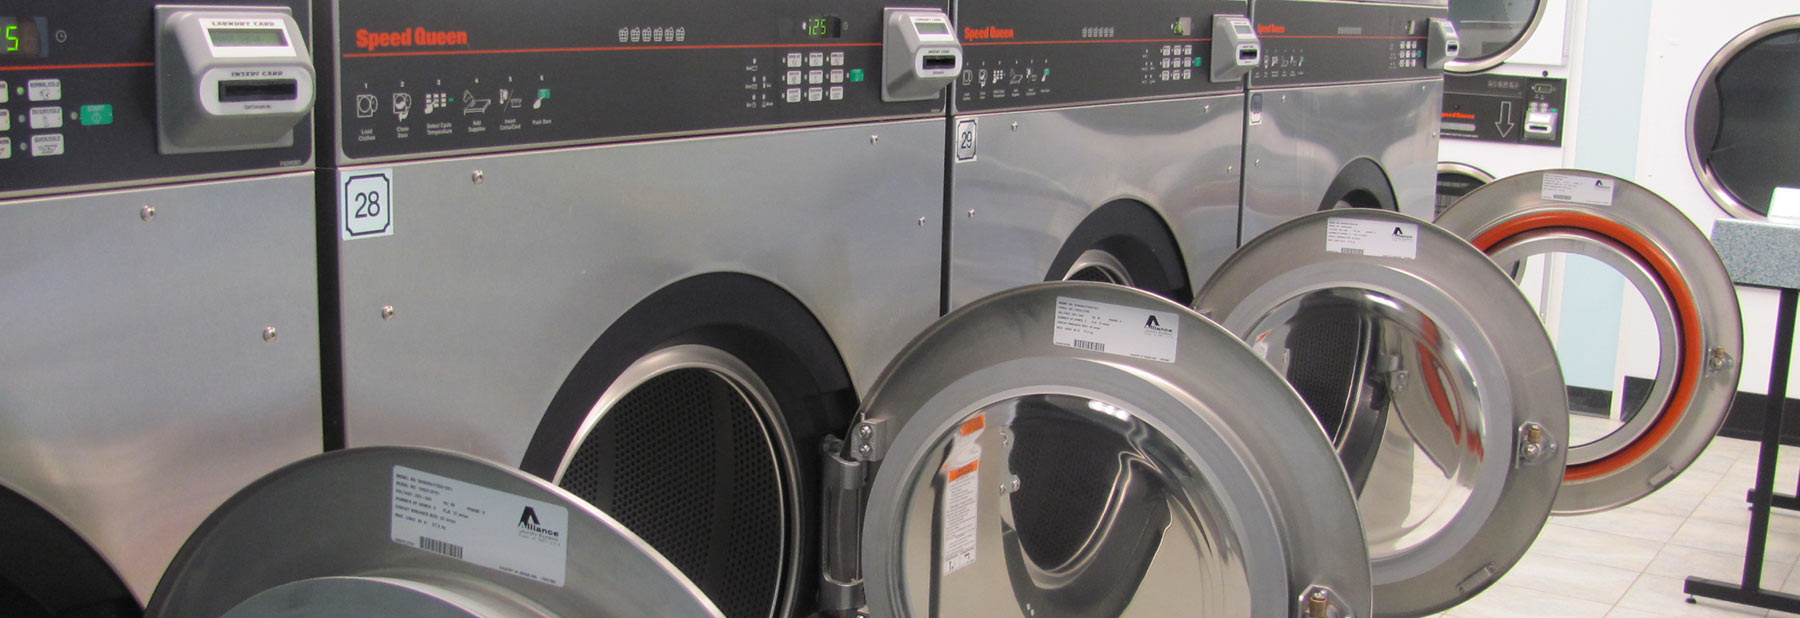 Industries Coin Vended Speed Queen BDS Laundry Systems